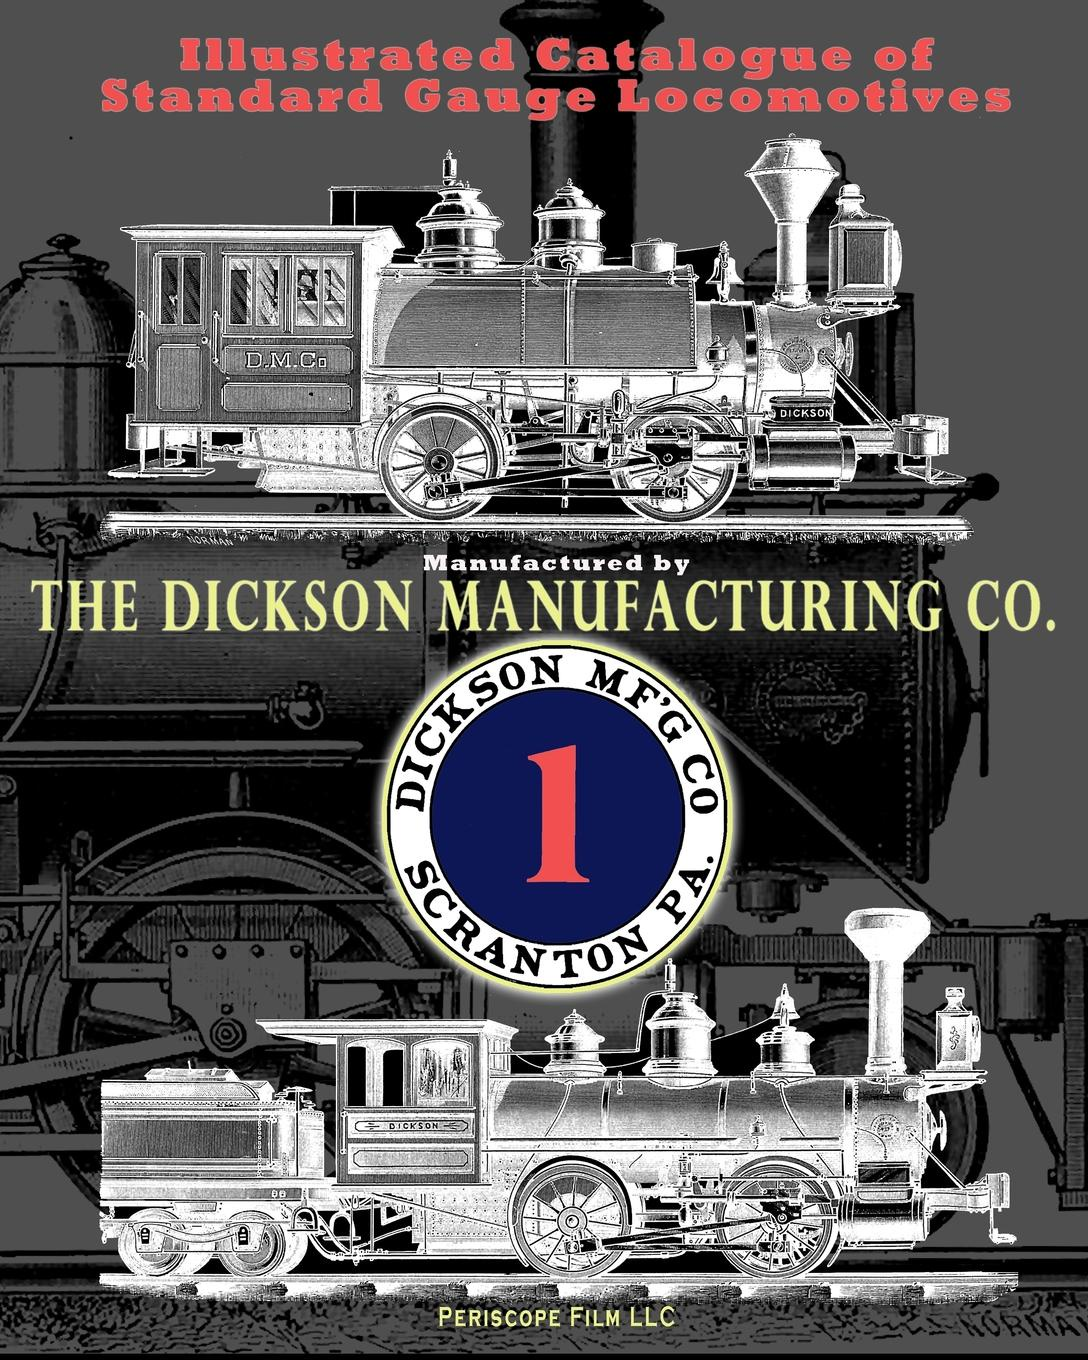 Dickson Manufacturing Co. Illustrated Catalogue of Standard Gauge Locomotives. Manufactured by Dickson Manufacturing Co. helen dickson a scoundrel of consequence